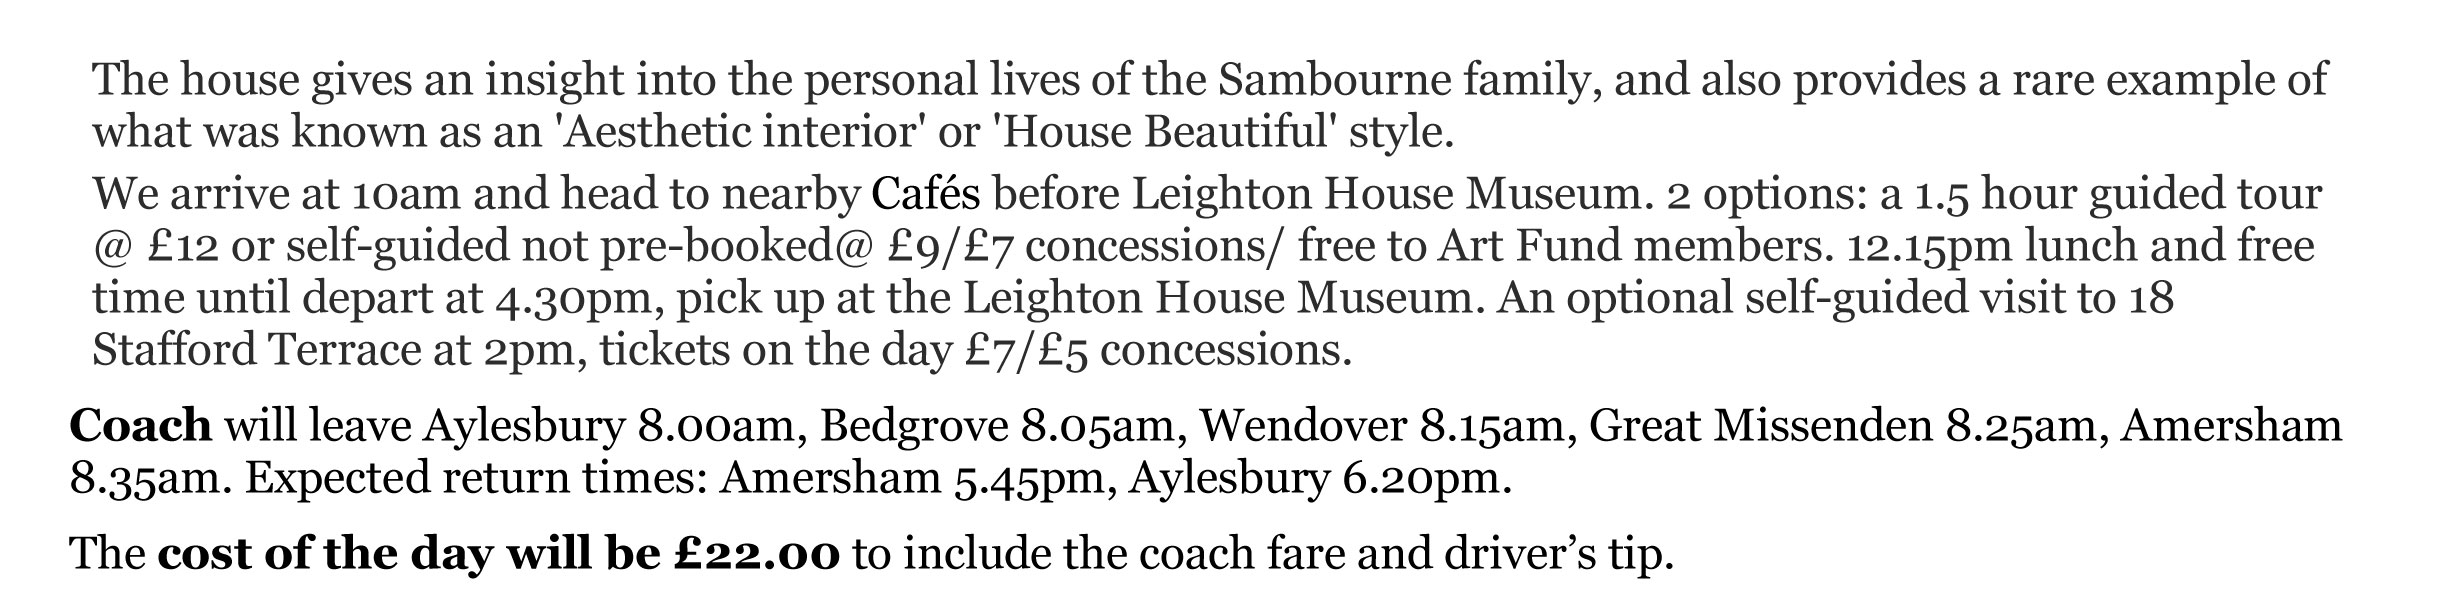 Leighton House outing details